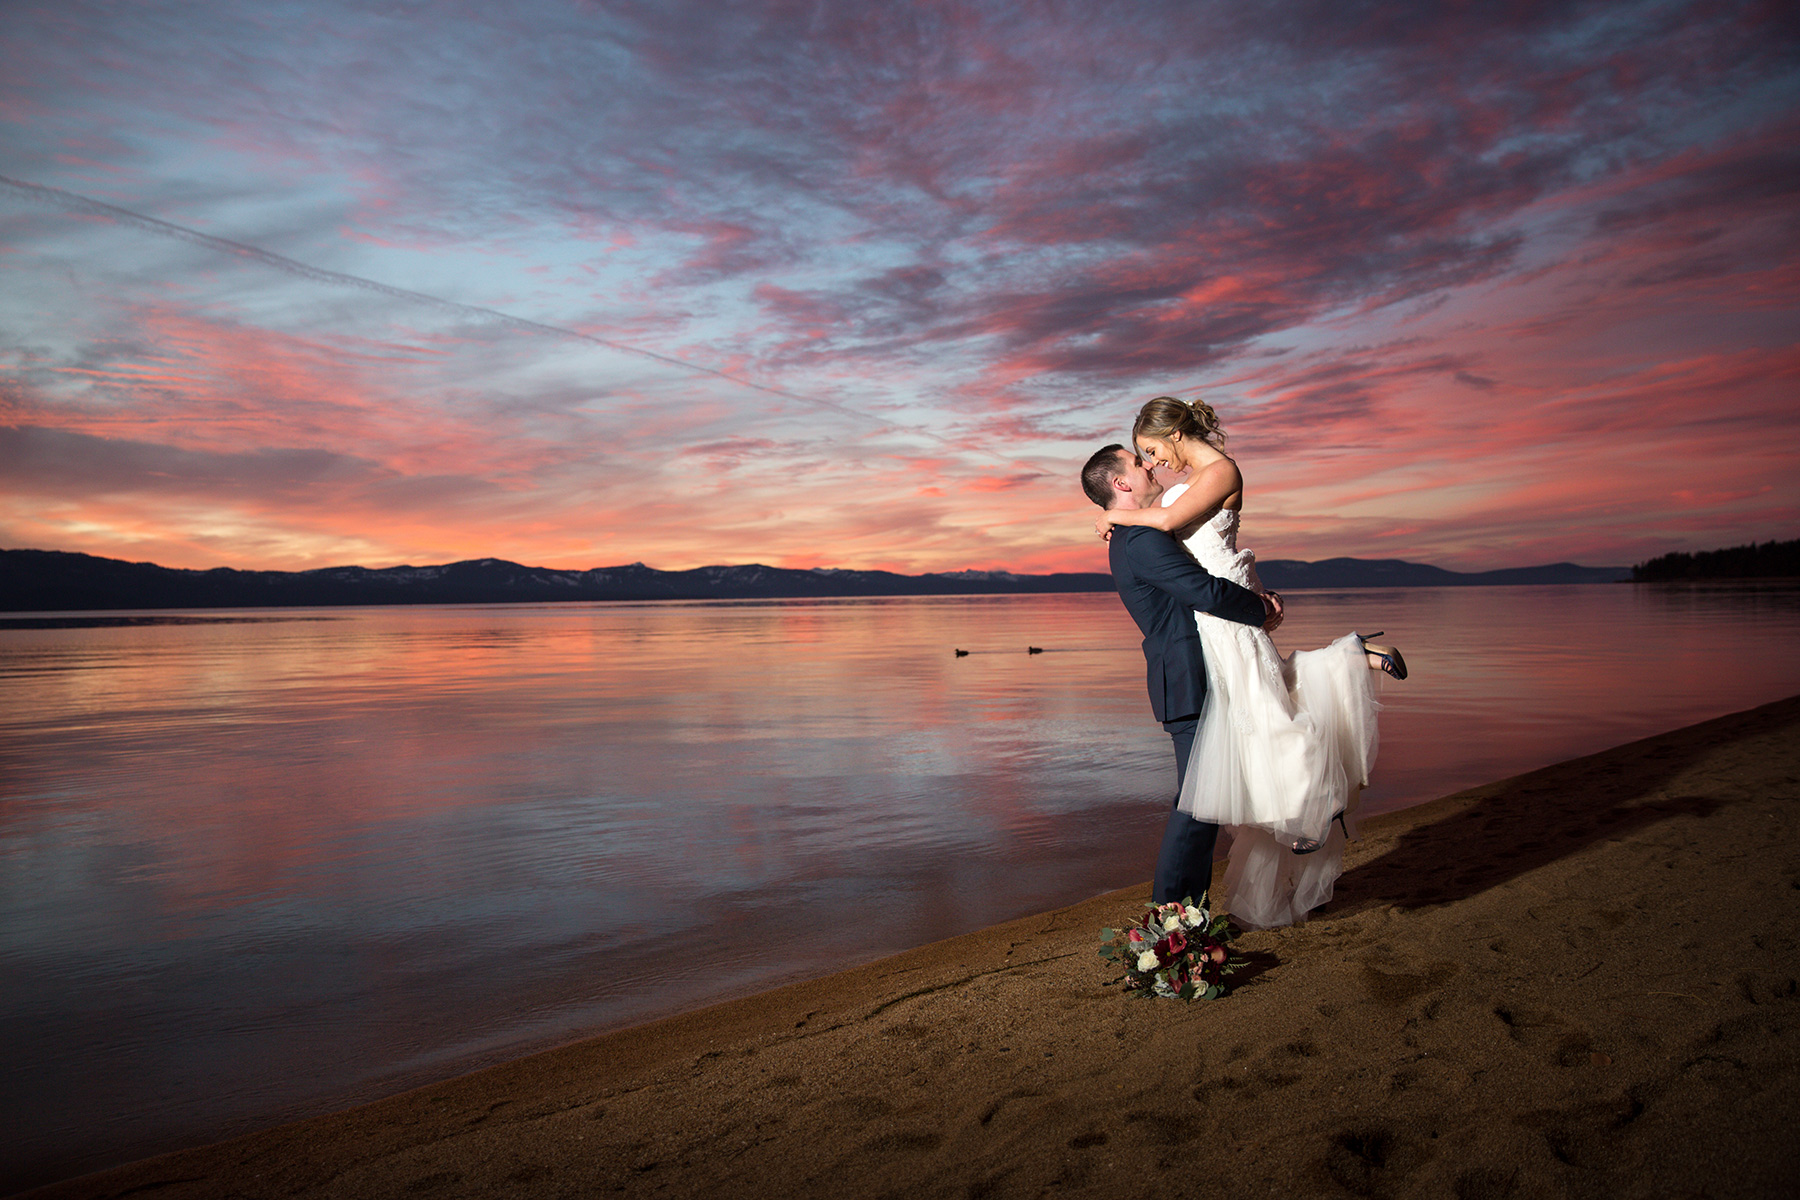 Edgewood-wedding-sunset-by-the-lake